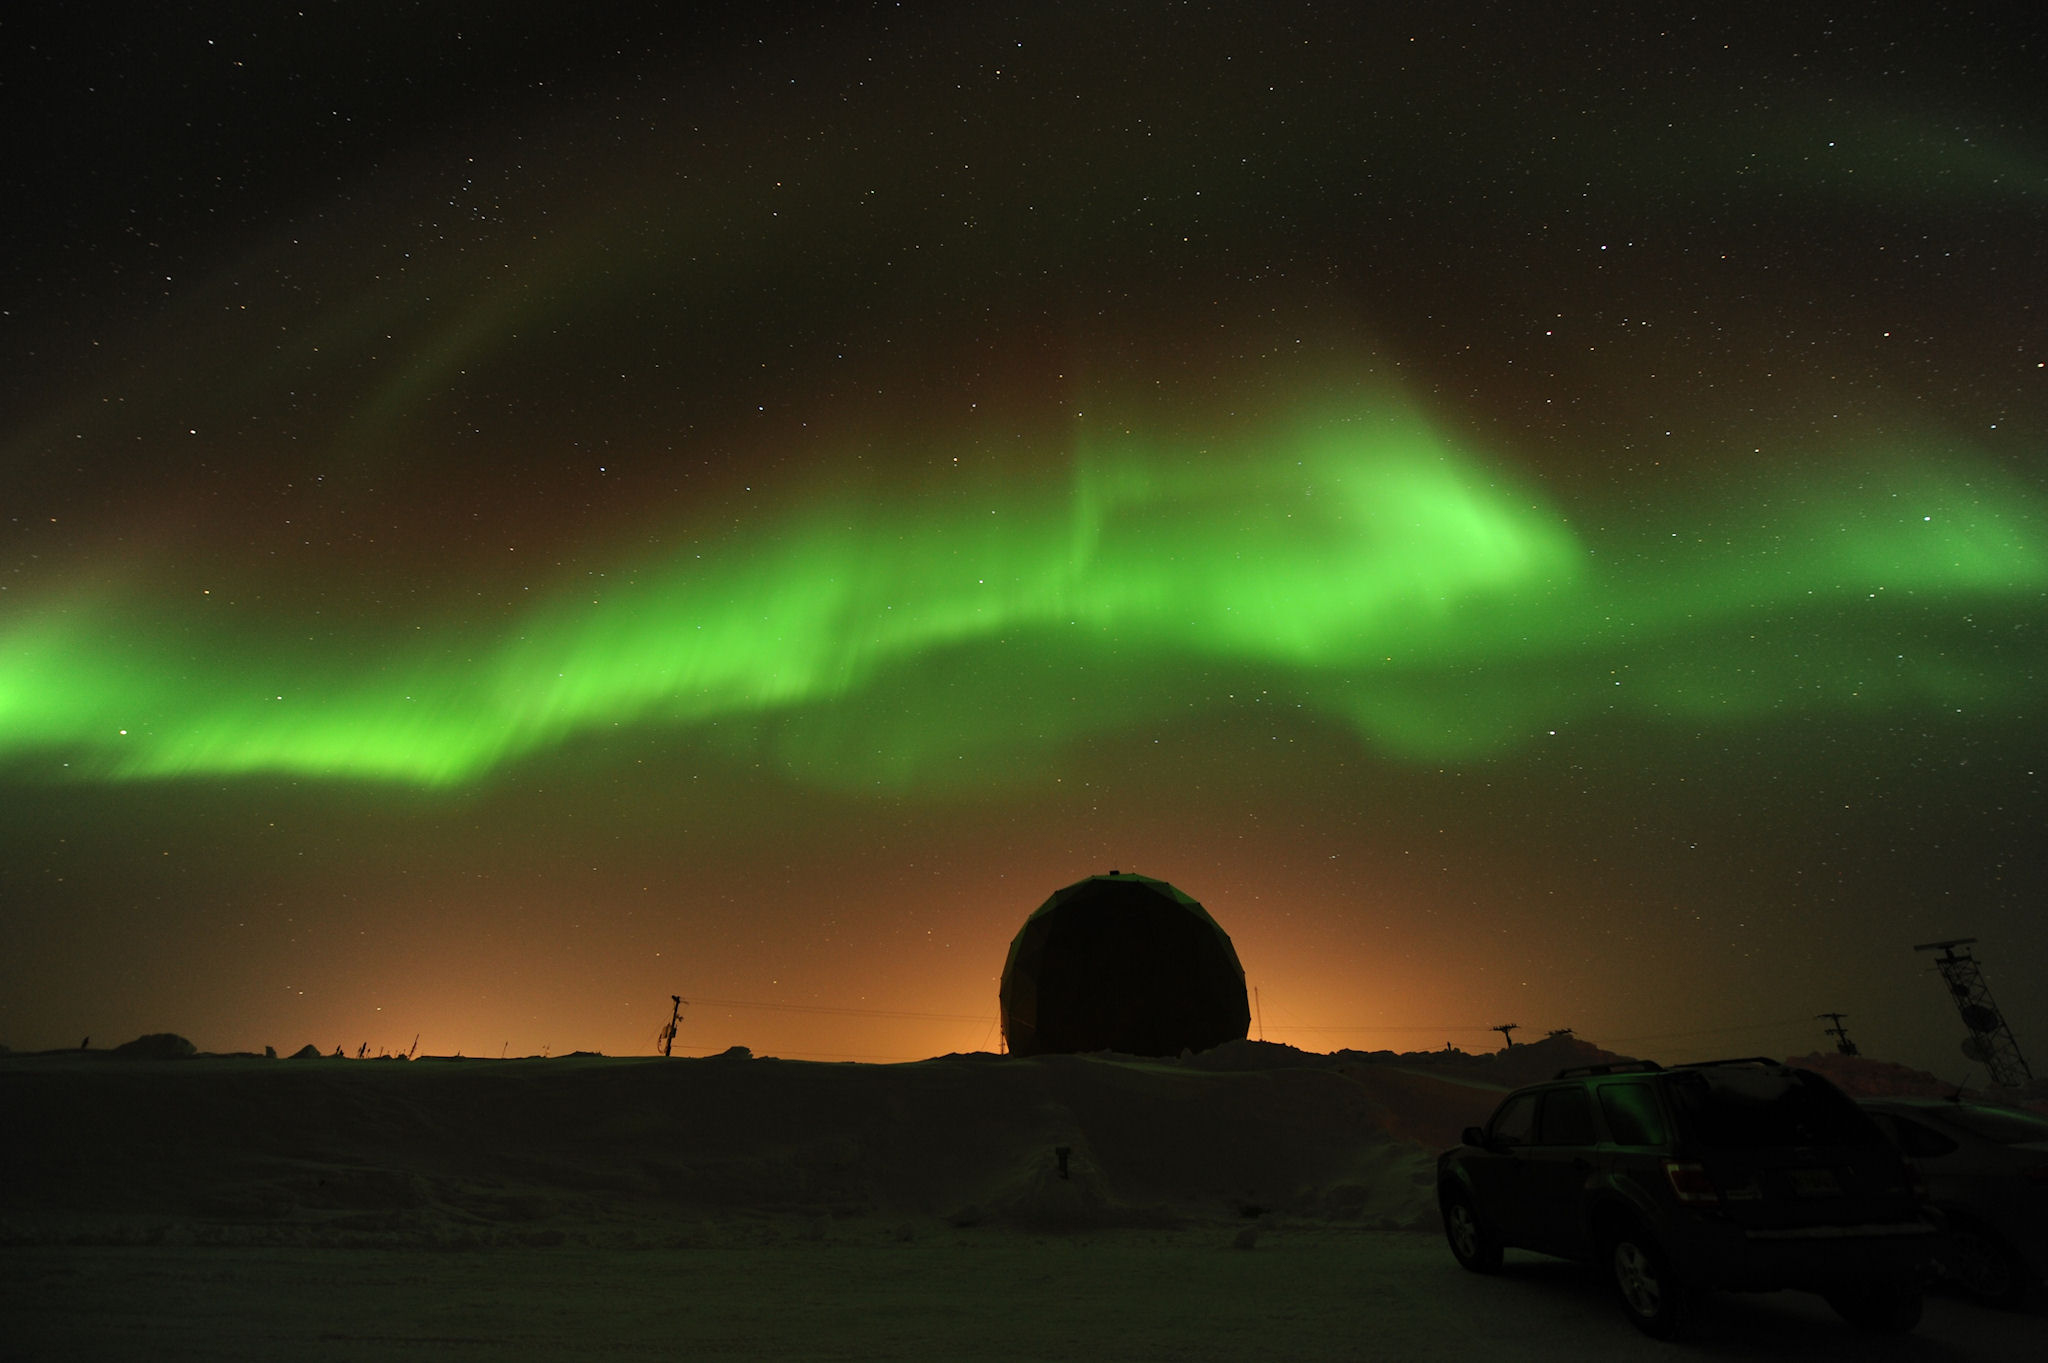 solar storm vs geomagnetic storm - photo #42